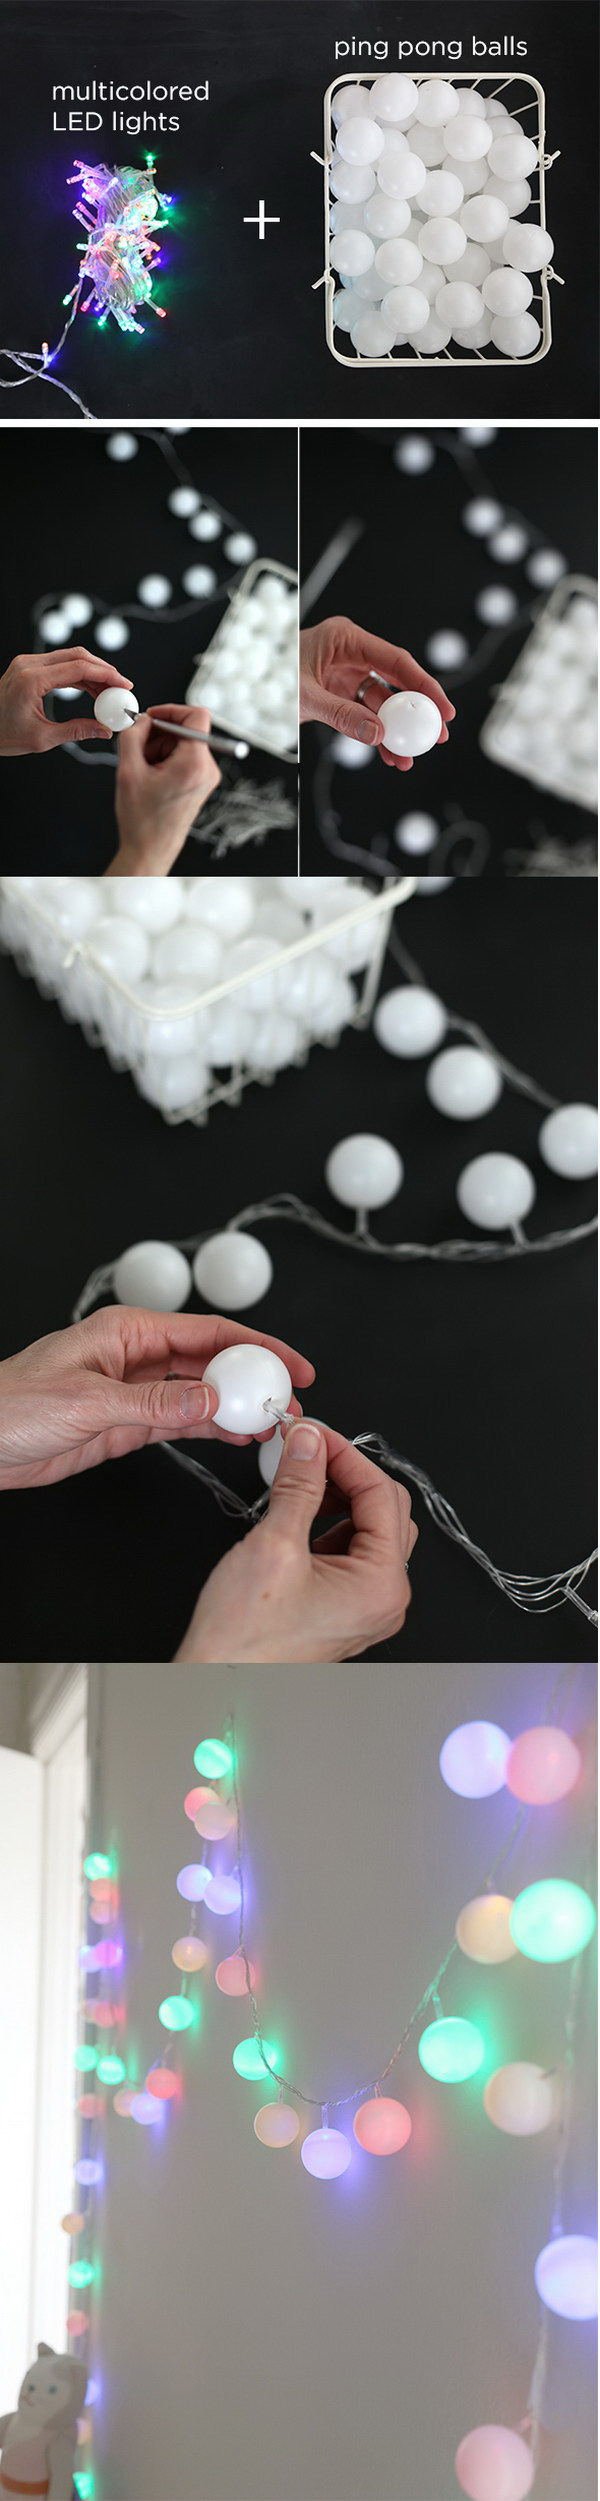 DIY Ping Pong Ball Light Garland.